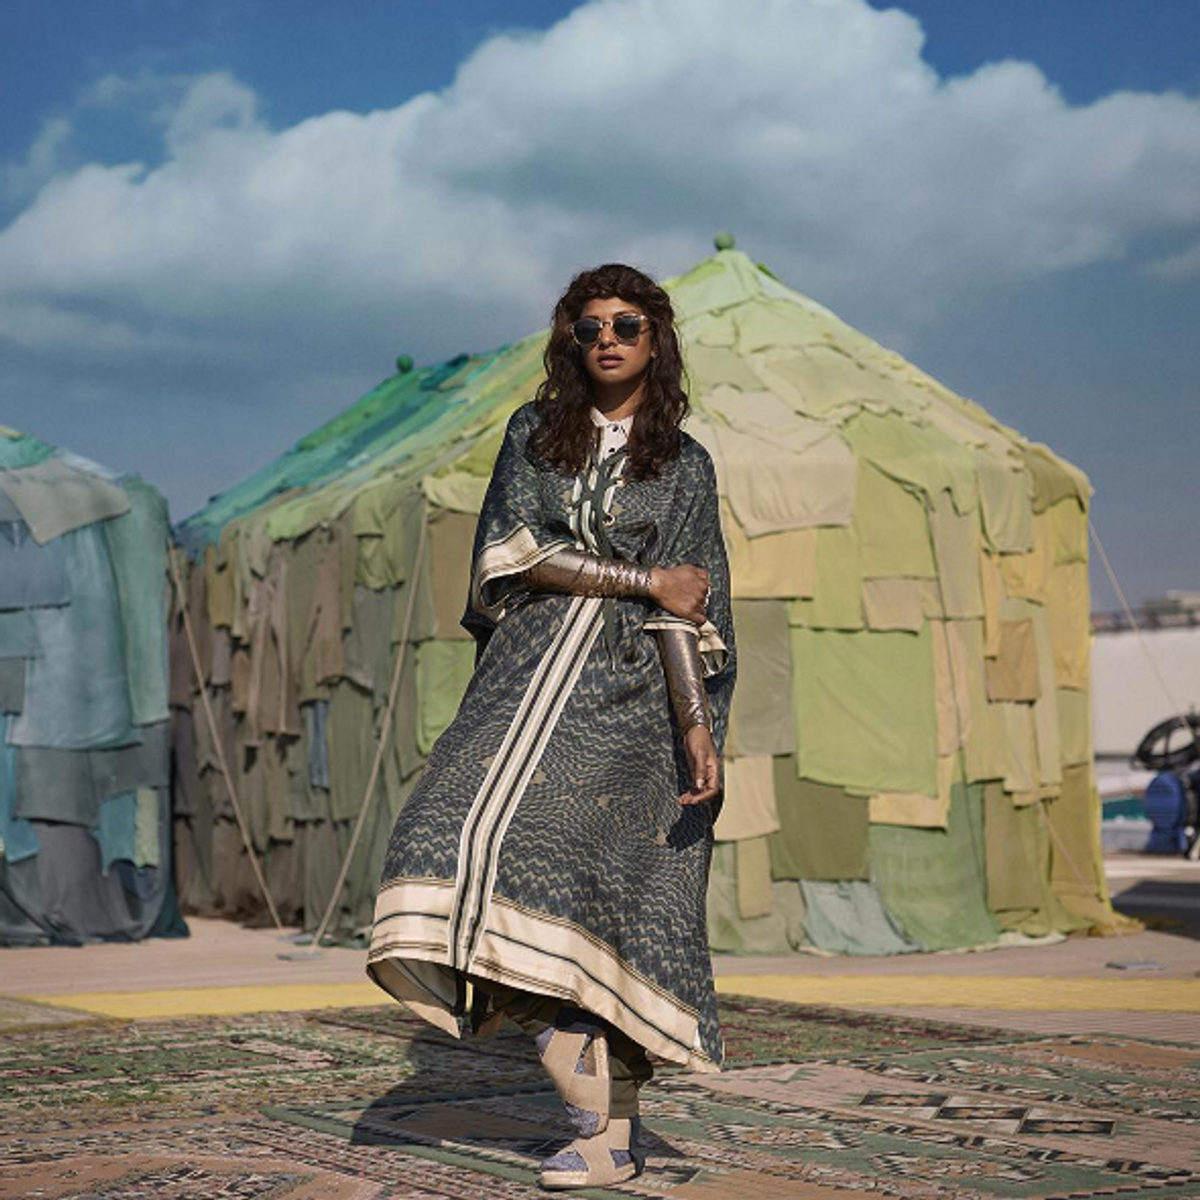 M.I.A. Just Dropped Another Song, And It Is A Banger